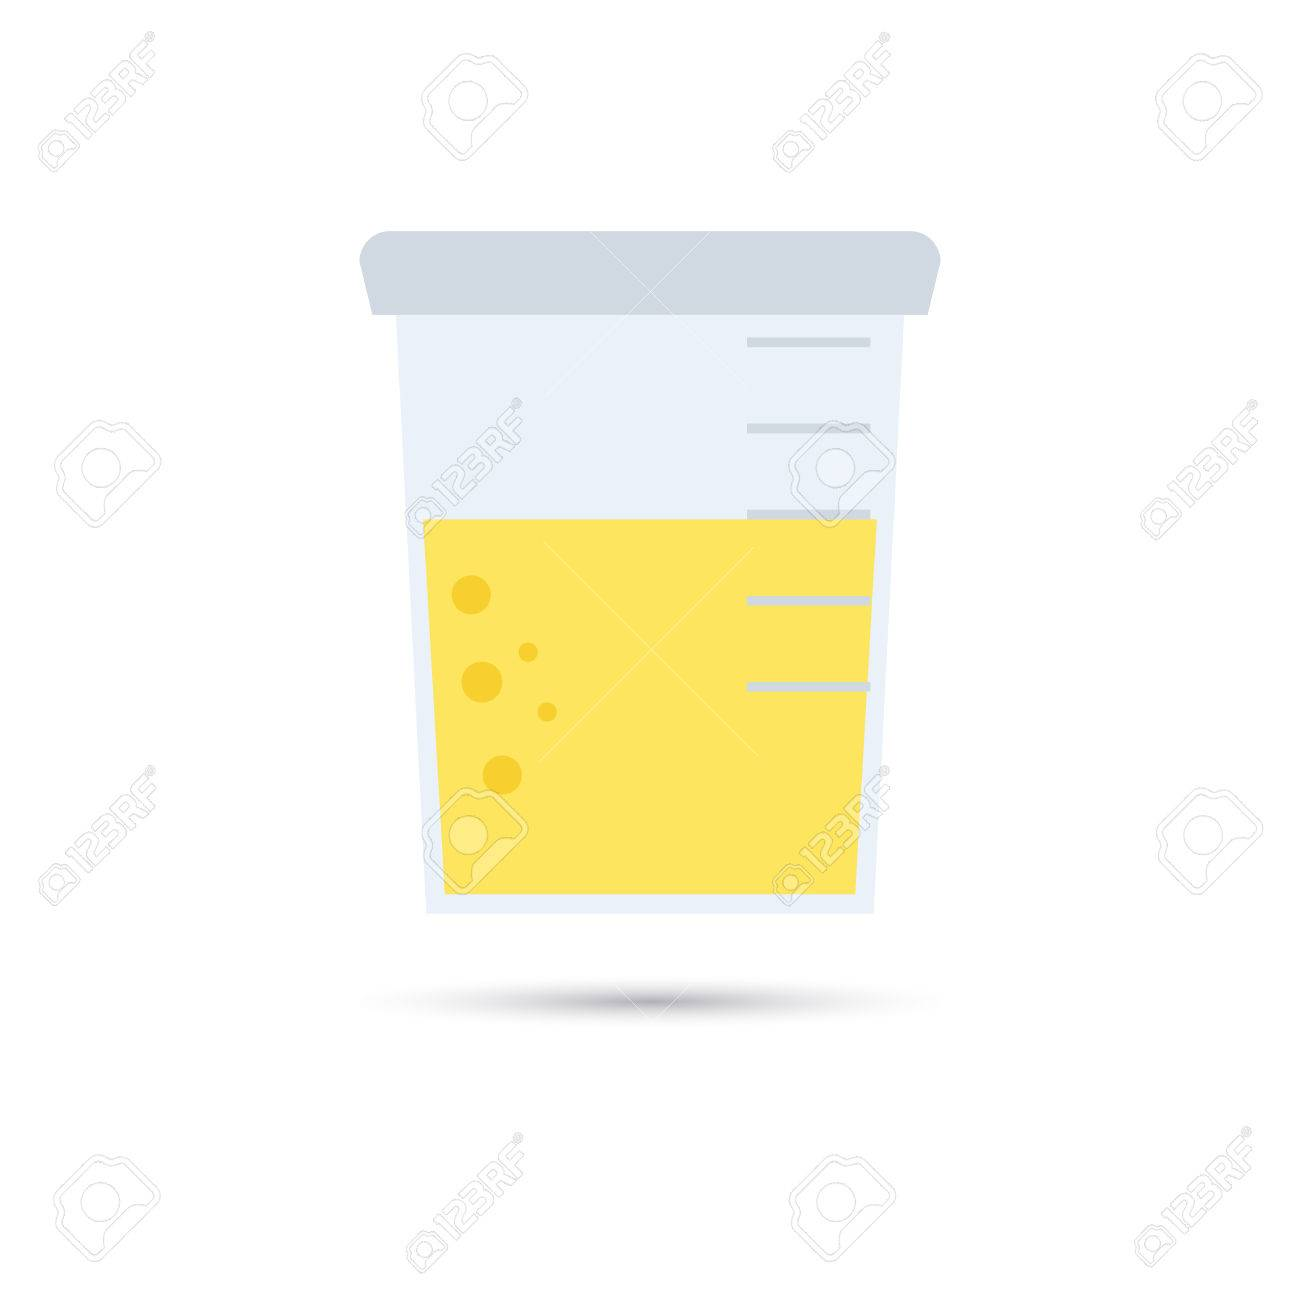 urine analysis icon royalty free cliparts vectors and stock rh 123rf com